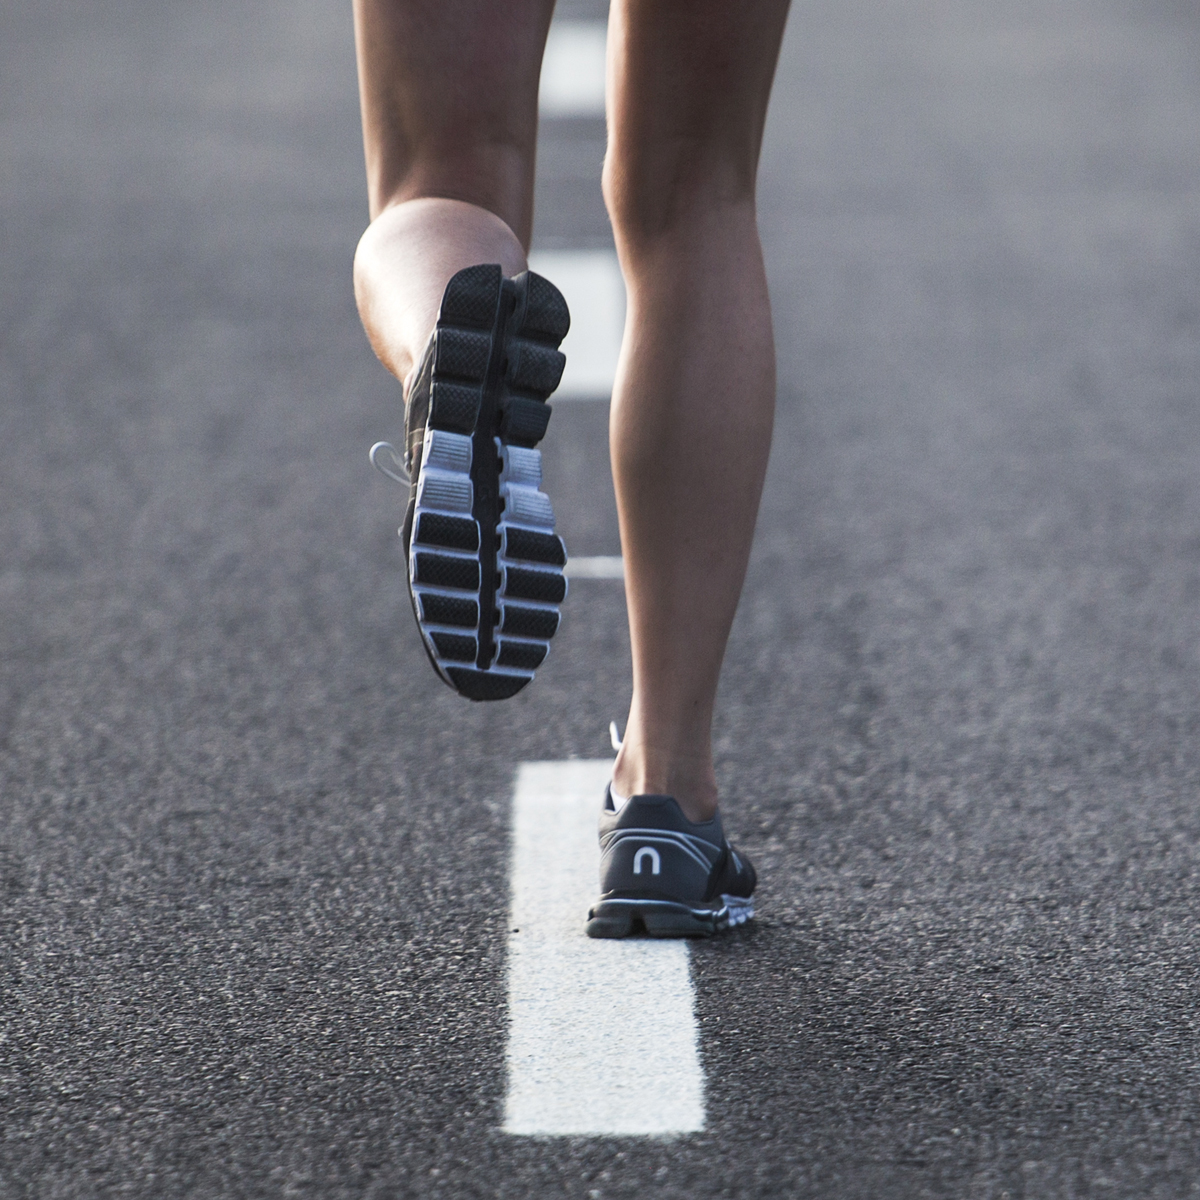 When to replace your running shoes | On